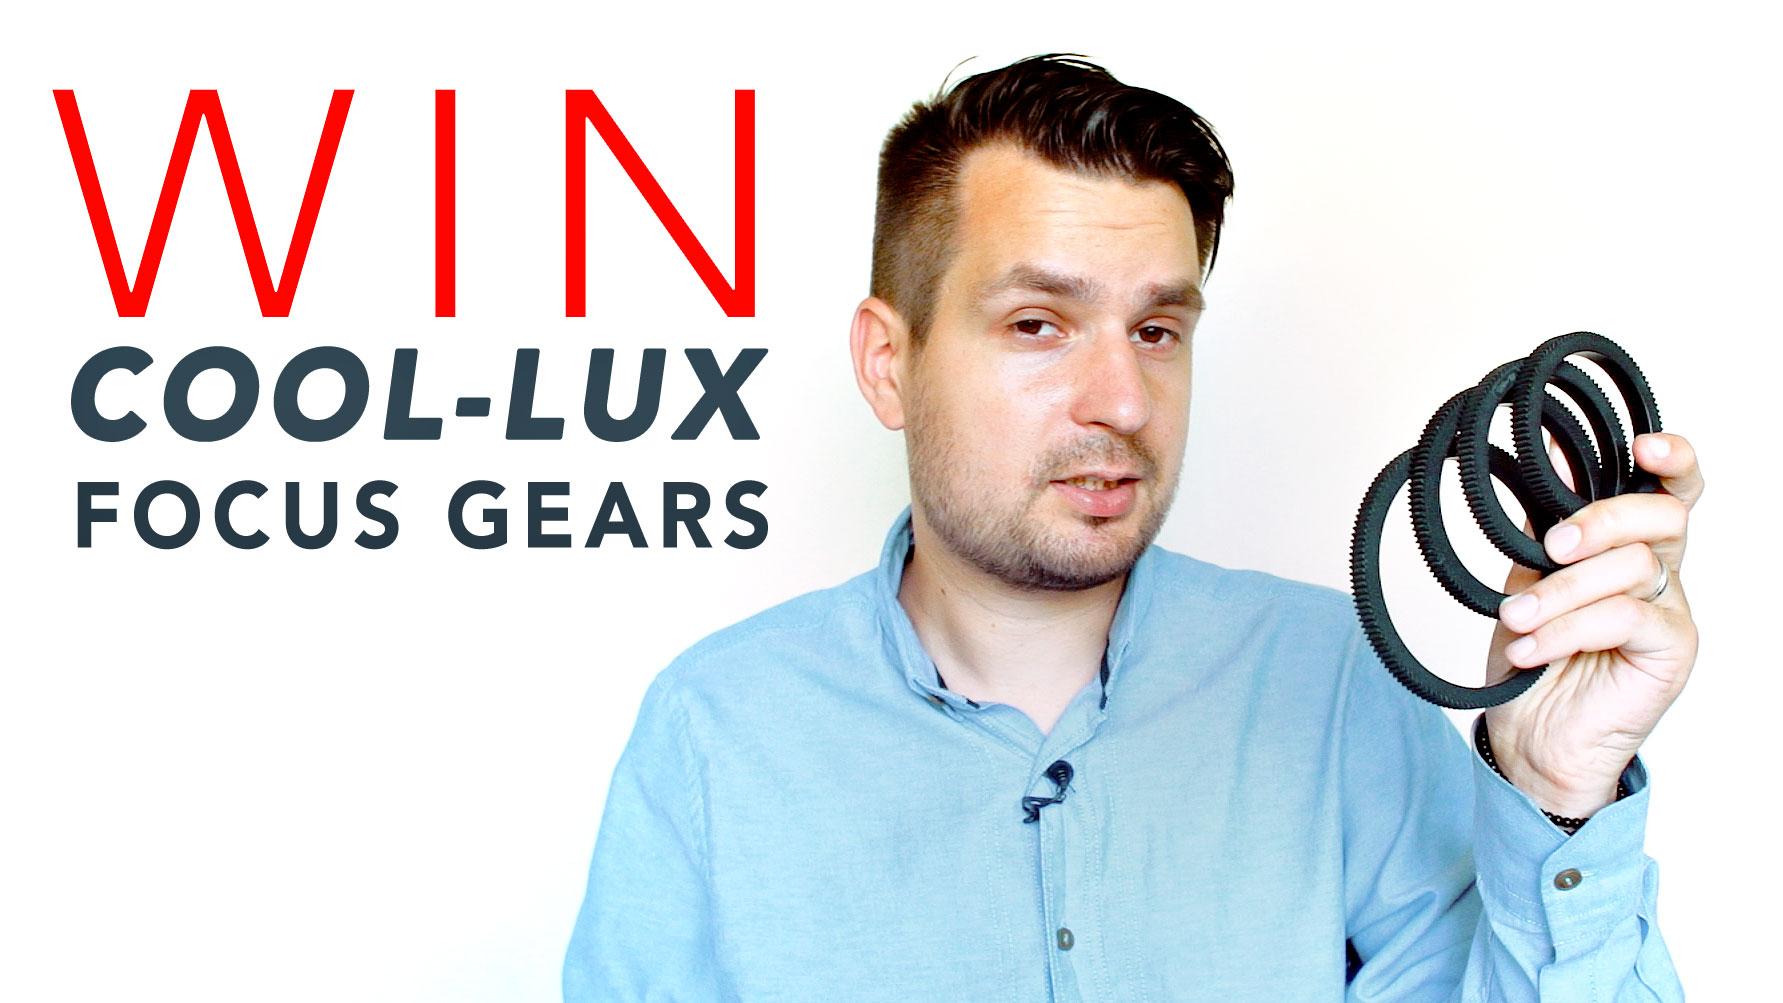 WIN 1 of 3 COOL-LUX Focus Gear Sets | CLOSED